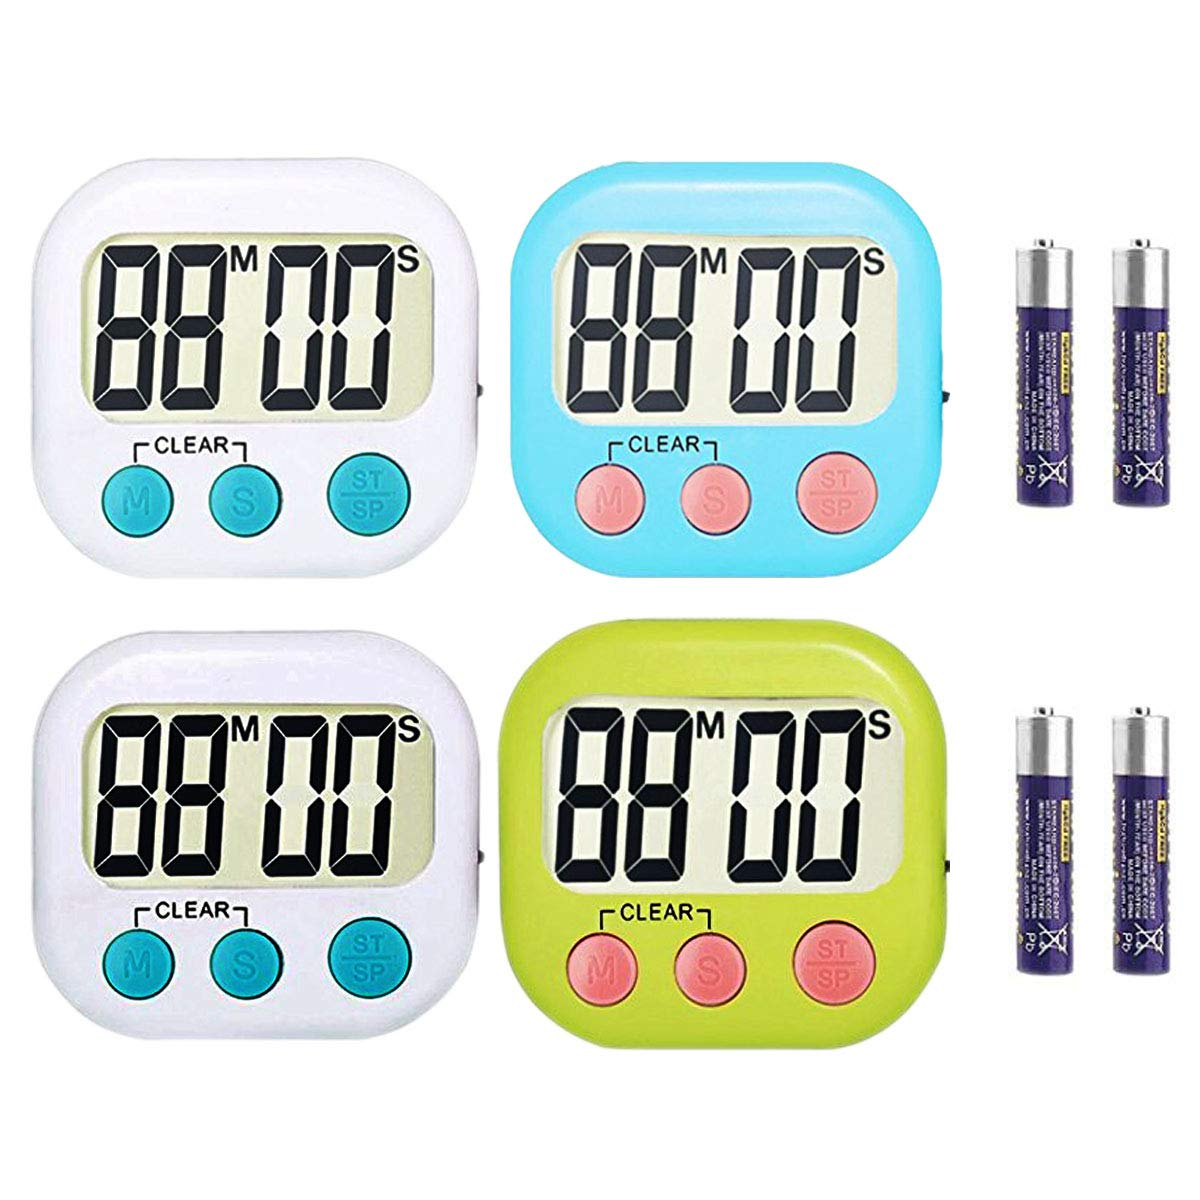 RUNTIM 4 Pack Digital Kitchen Timer, Cooking Timers, Large Display, Strong Magnet Back Stand, Loud Alarm, Minute Second Count Up Countdown for Cooking Baking Sports Games Kids, AAA Batteries Included